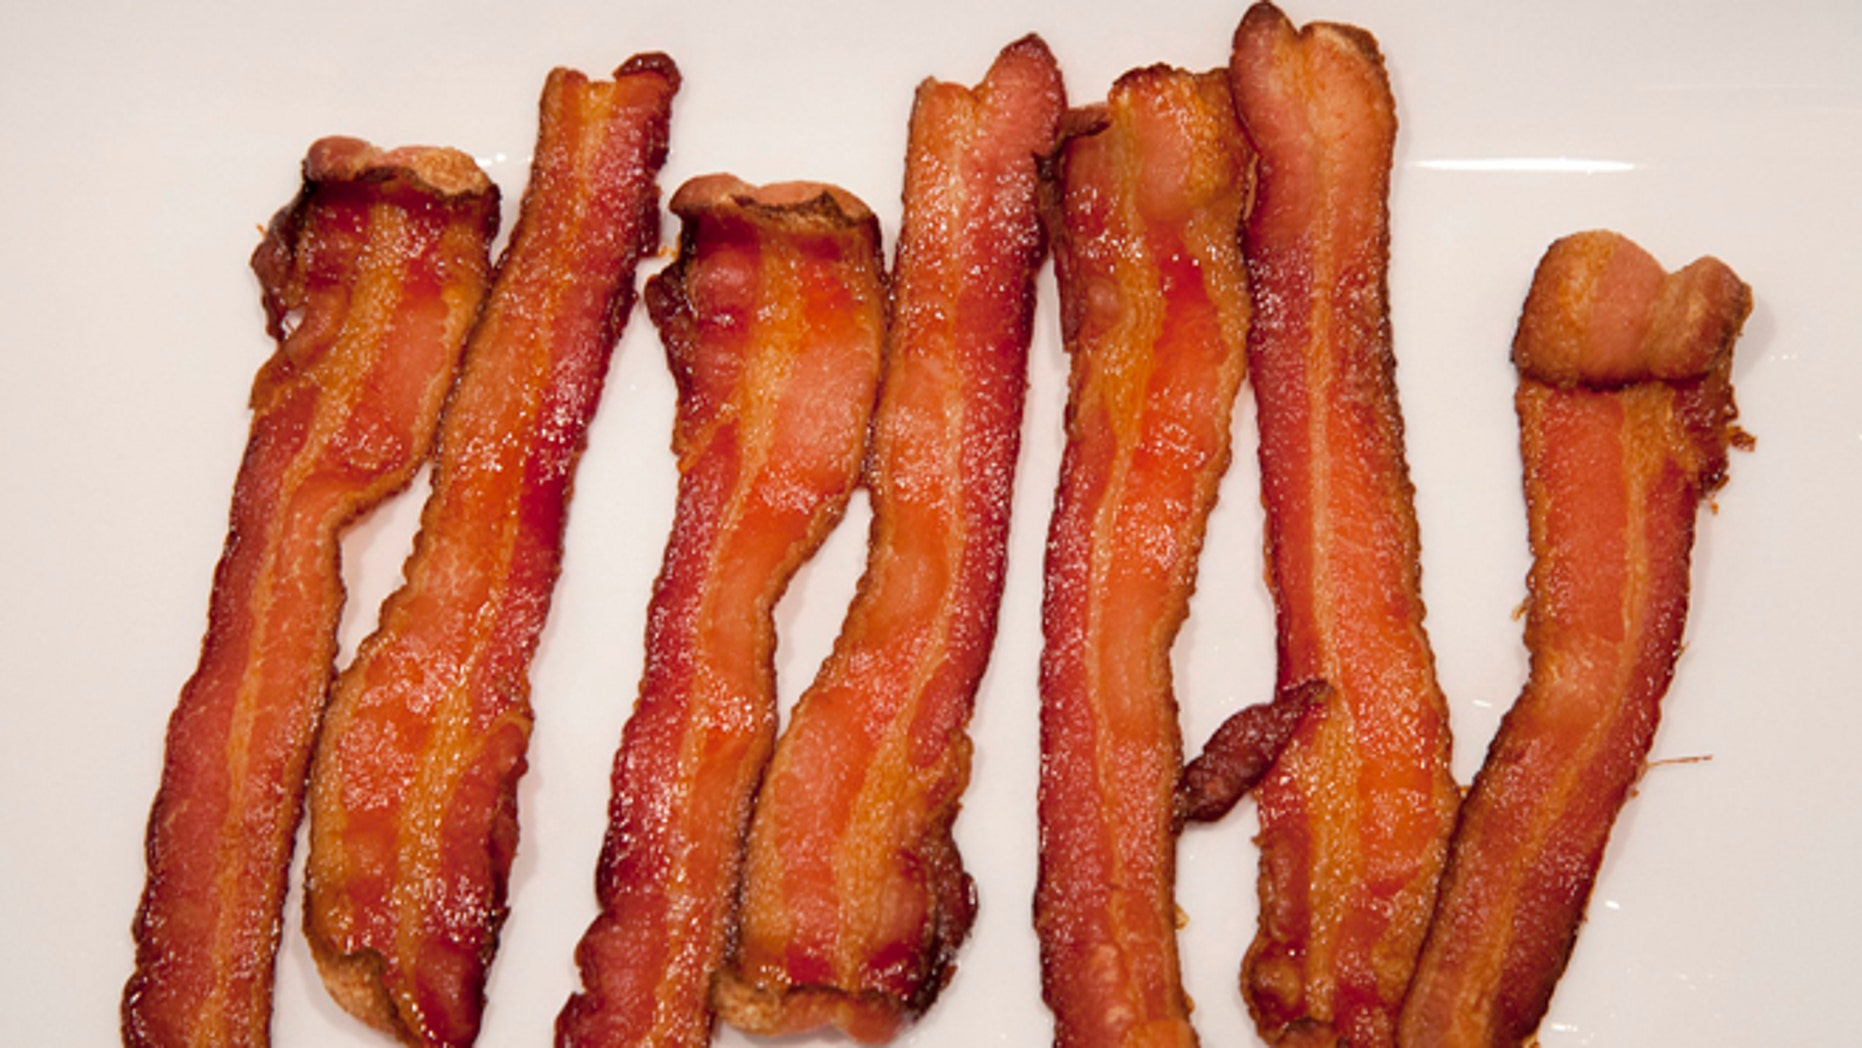 This Wednesday, Sept. 26, 2012 photo shows strips of cooked Bacon at a home in North Vancouver, British Columbia, Canada. A British farming organization is predicting a worldwide shortage of bacon and pork in 2013. The National Pig Association says global drought conditions are driving up the price of grain, a major staple in hog feed. It says pig farmers around the world are selling their herds because retail prices are not rising fast enough to cover the cost of record-high pig-feed costs. (The Canadian Press, Jonathan Hayward)